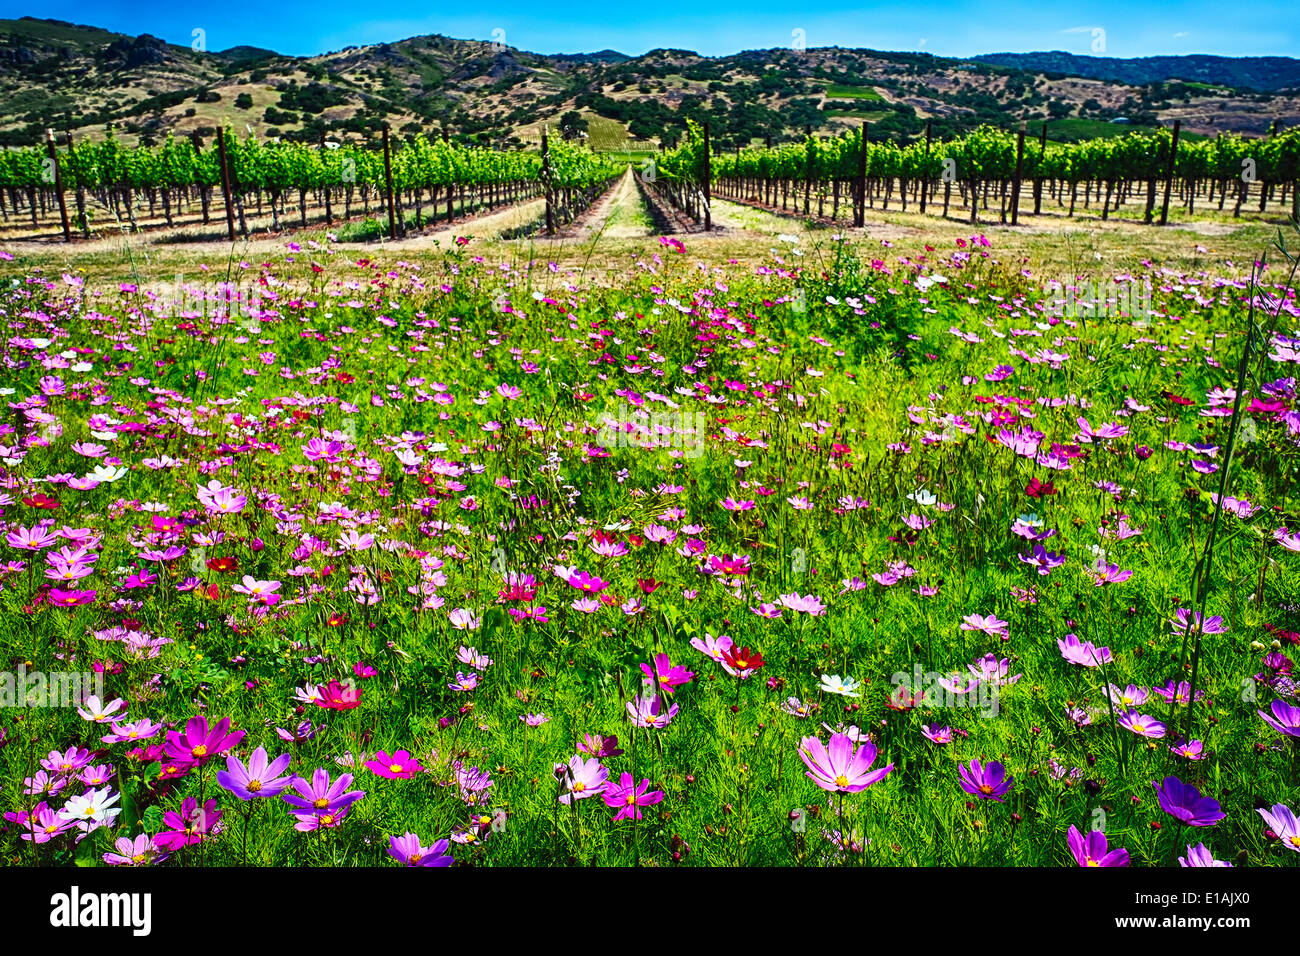 Low Angle View of Spring Wildflowers and Row of Grapevines, Napa Valley, California - Stock Image